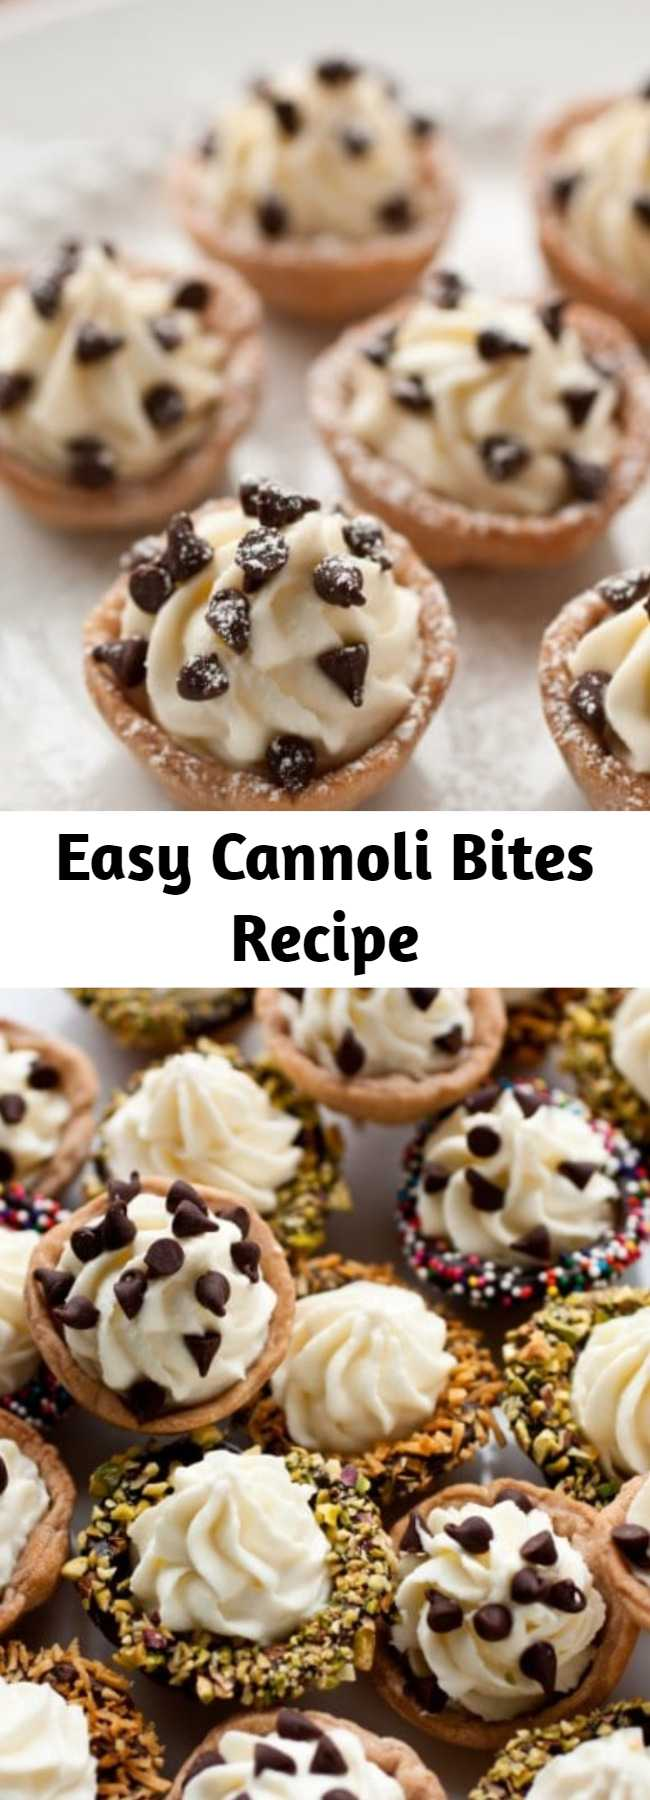 Easy Cannoli Bites Recipe - All the flavors of cannoli in mini oven baked treats. Made with a crisp pastry shell, filled with a sweet ricotta filling and finished with chocolate chips. Who could resist this tempting treat?